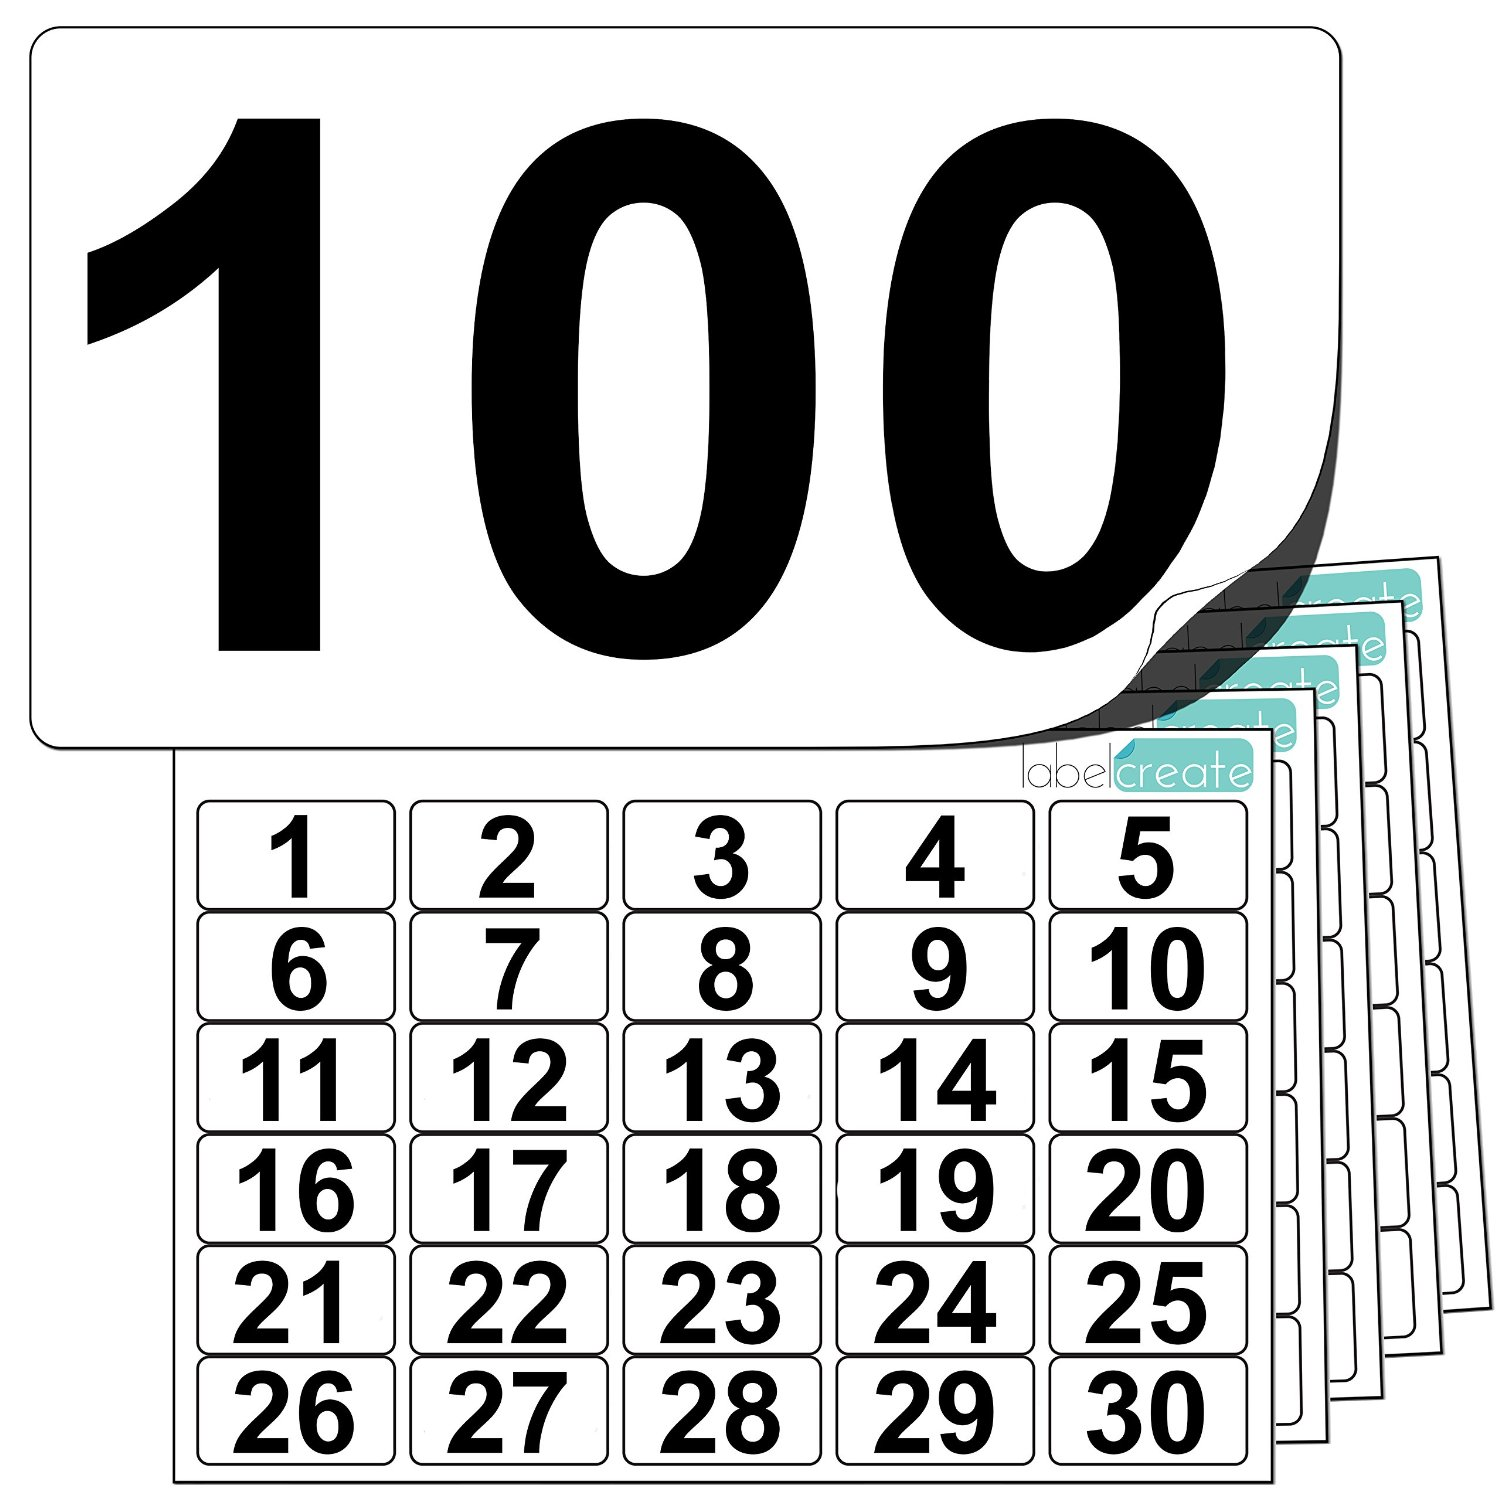 Premium Plastic Number Stickers 1 to 100 (+ 20 Blank Spares)